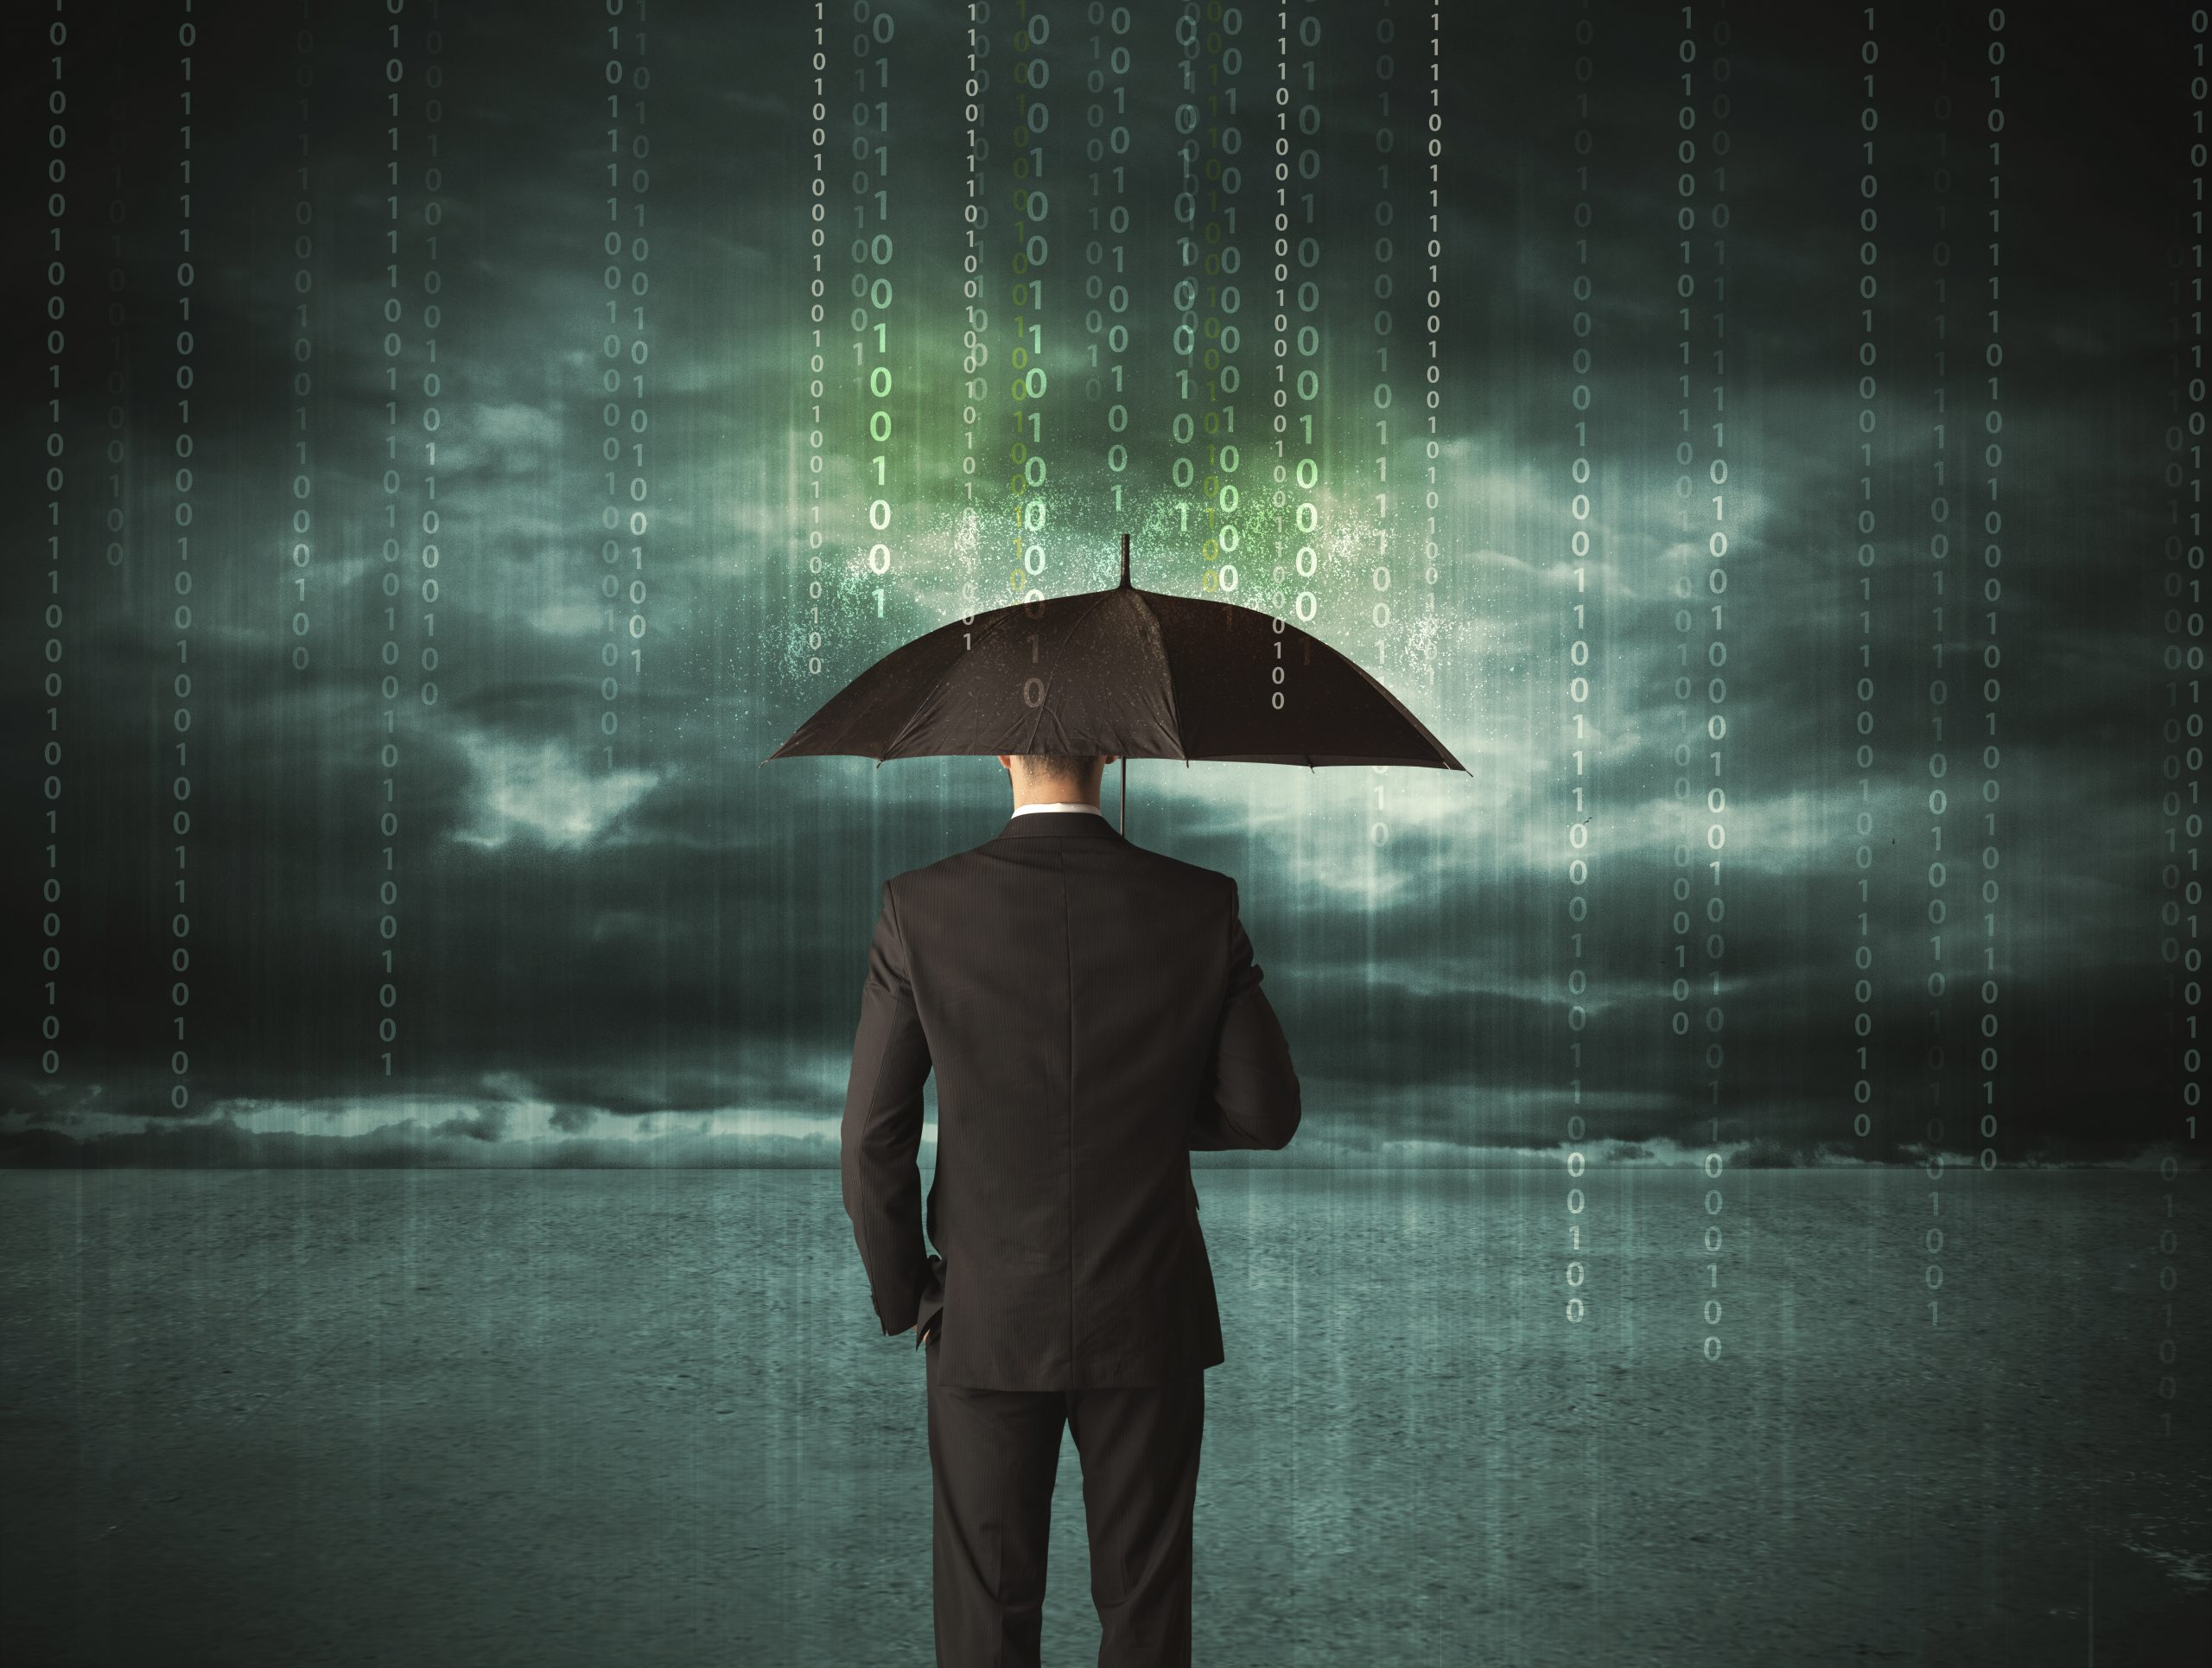 Preparing for the Tempest: SonicWall's 2020 Cyber Threat Report